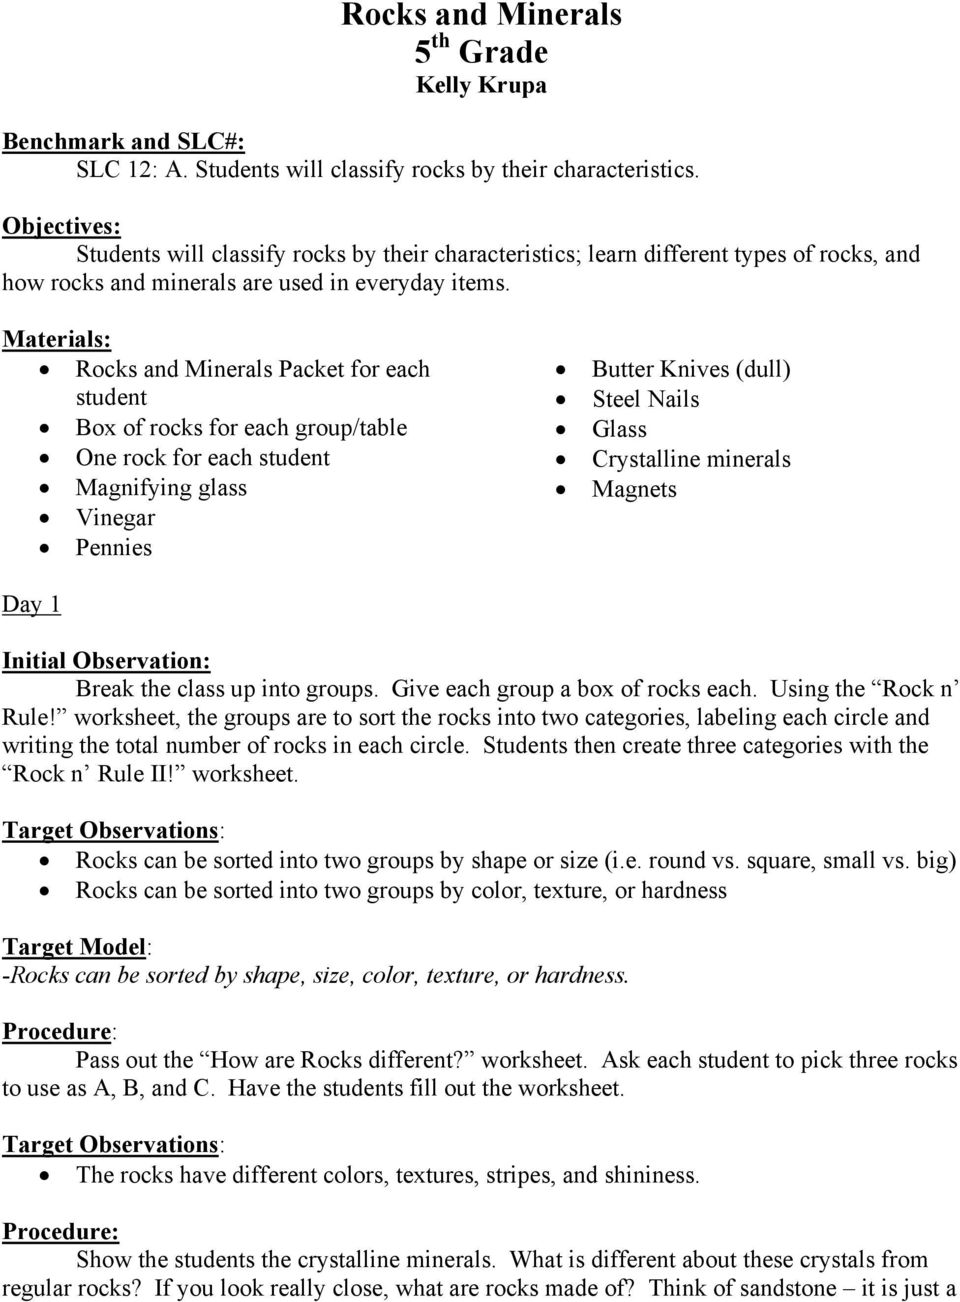 hight resolution of Rocks and Minerals 5 th Grade Kelly Krupa - PDF Free Download